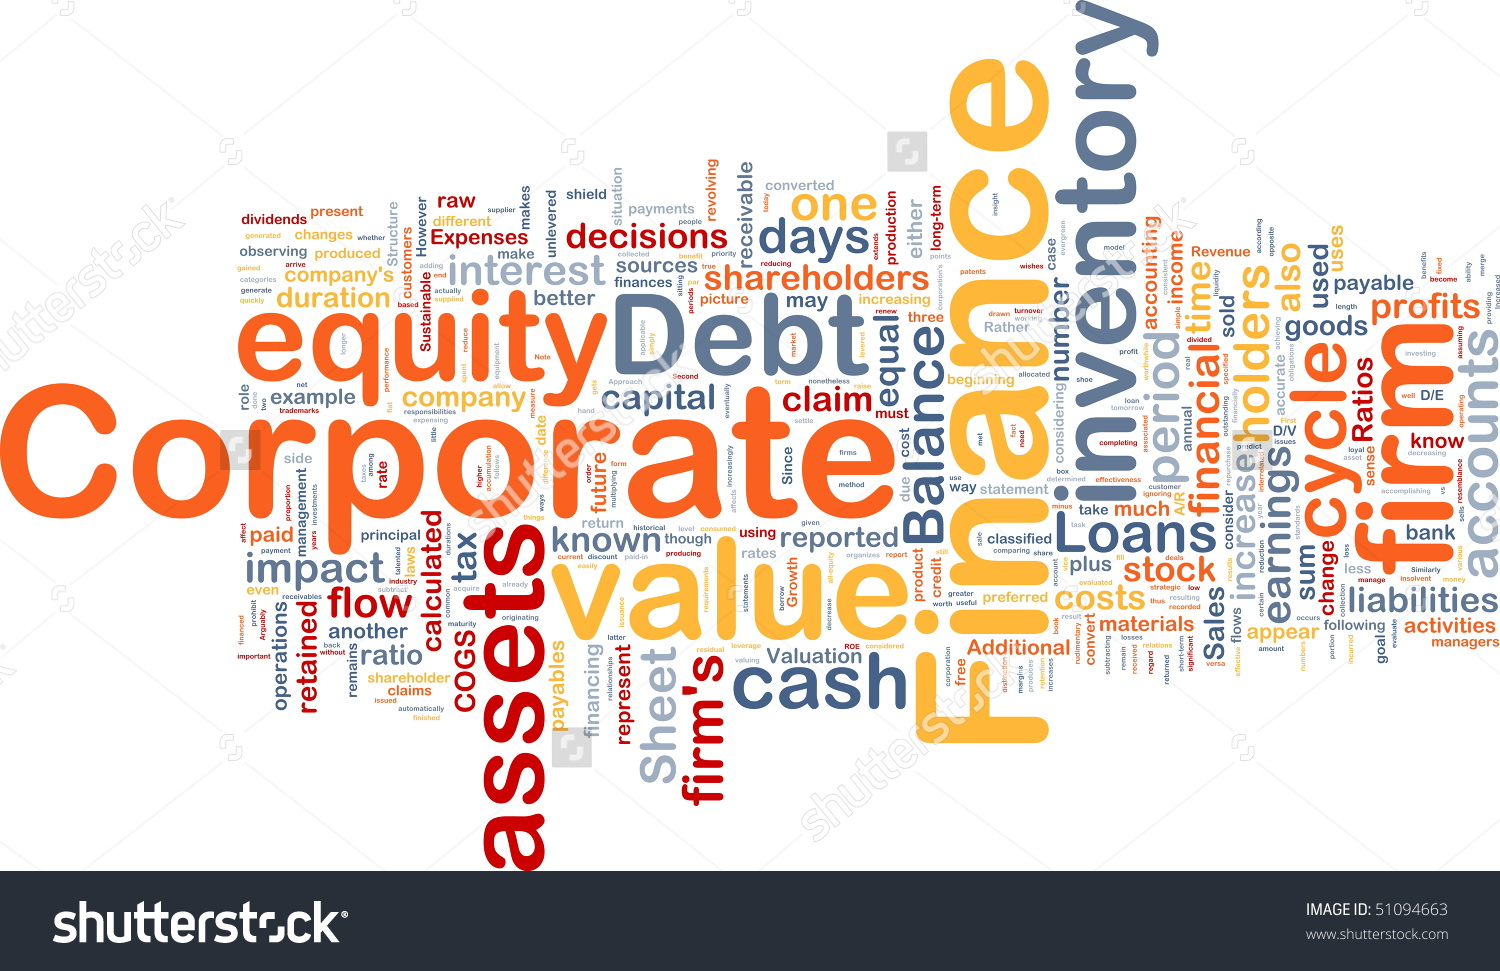 Background Concept Illustration Business Corporate Finance Stock.